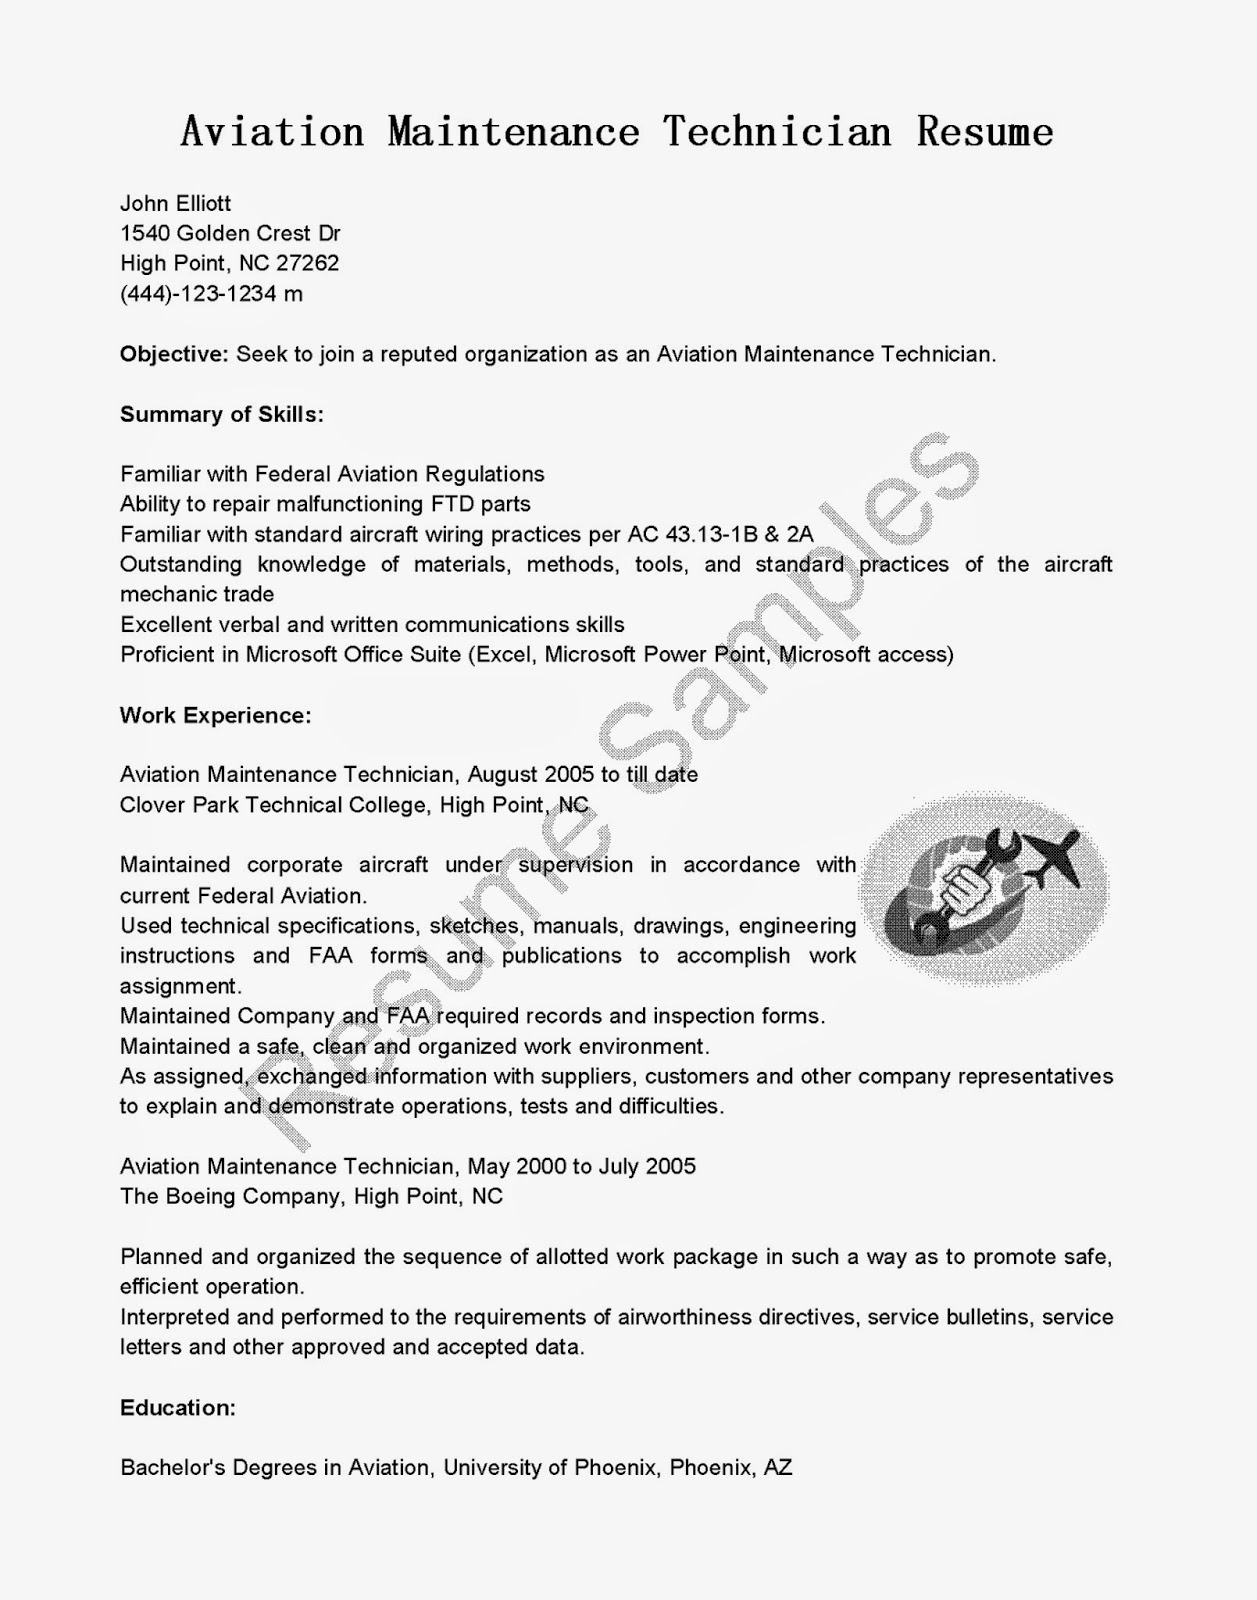 resume samples aviation maintenance technician resume sample